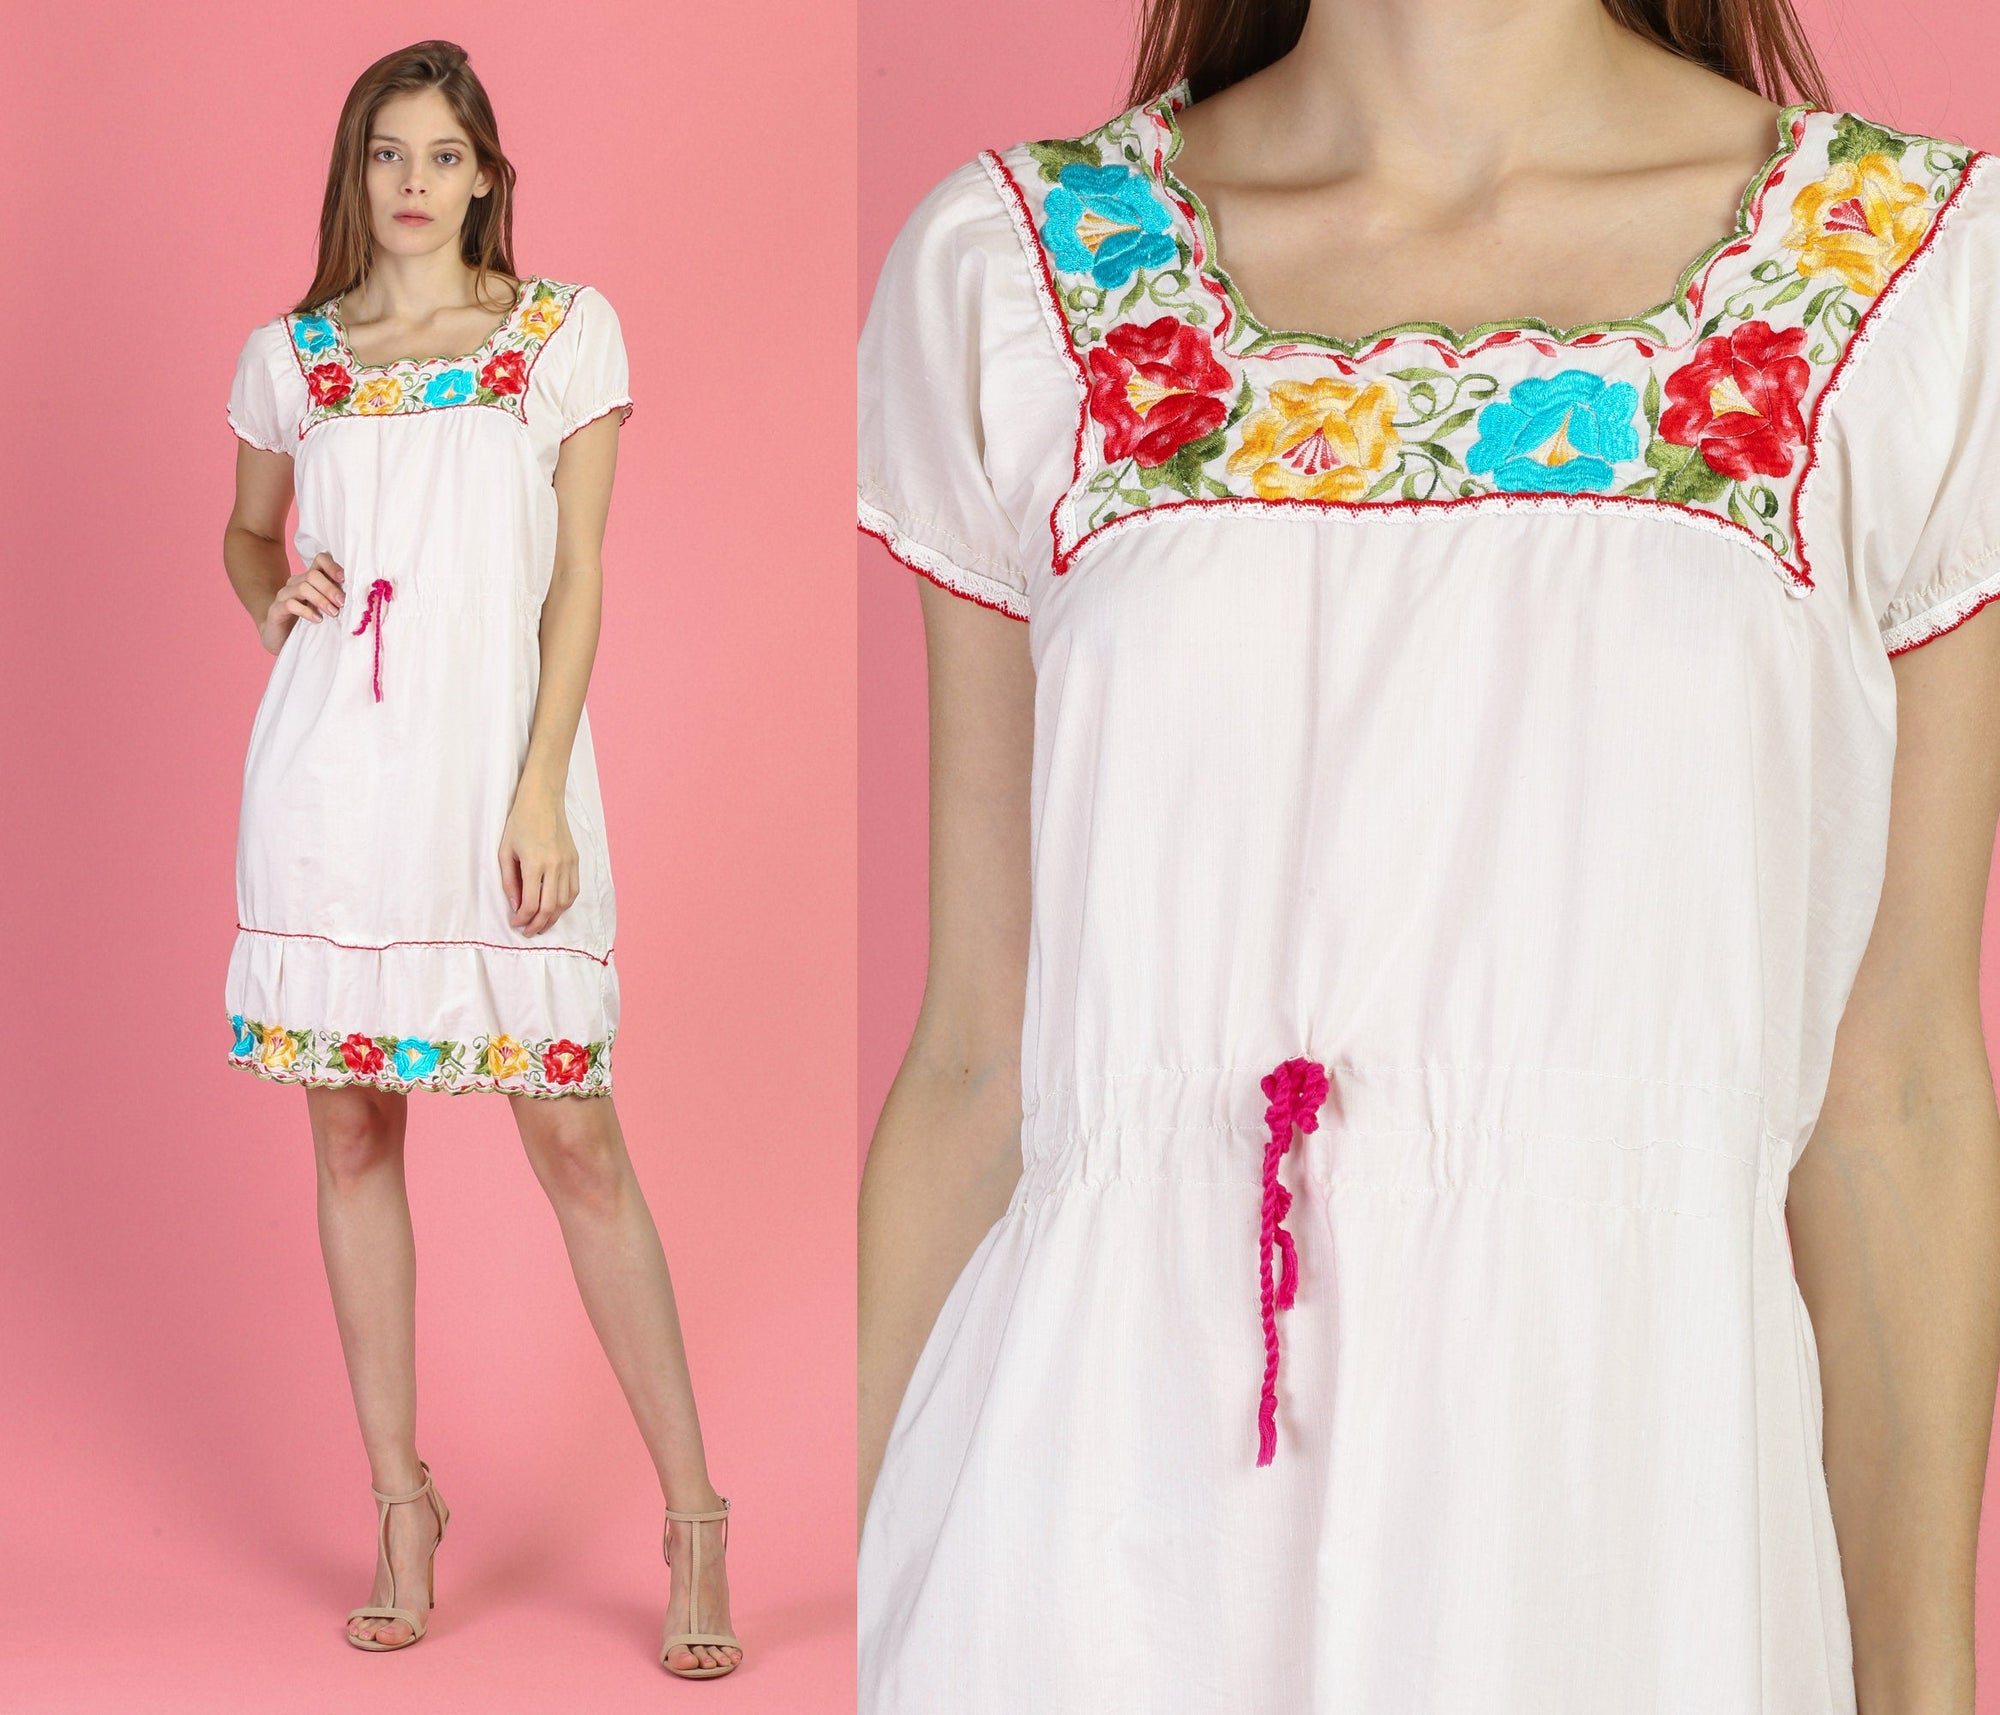 70s Boho Mexican Mini Dress - Large